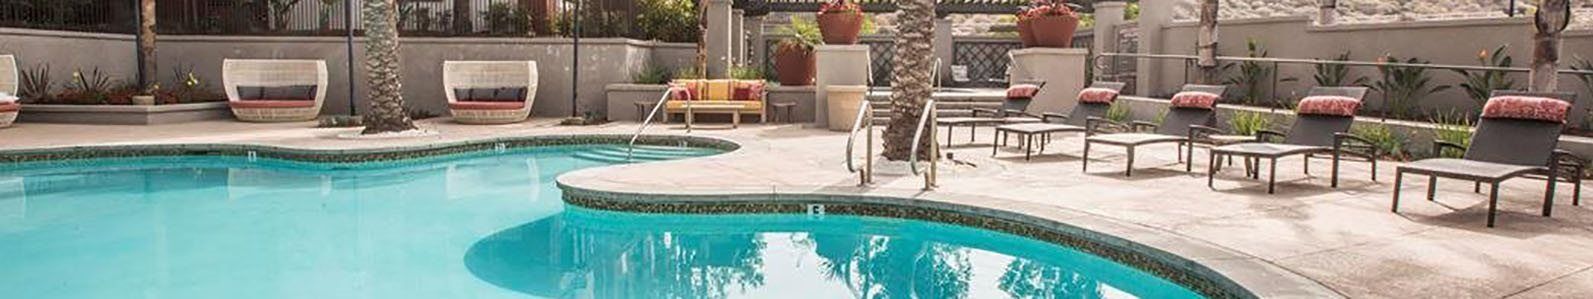 Pool with Seating l Apartments For Rent in Slymar CA at Rockwood at the Cascades